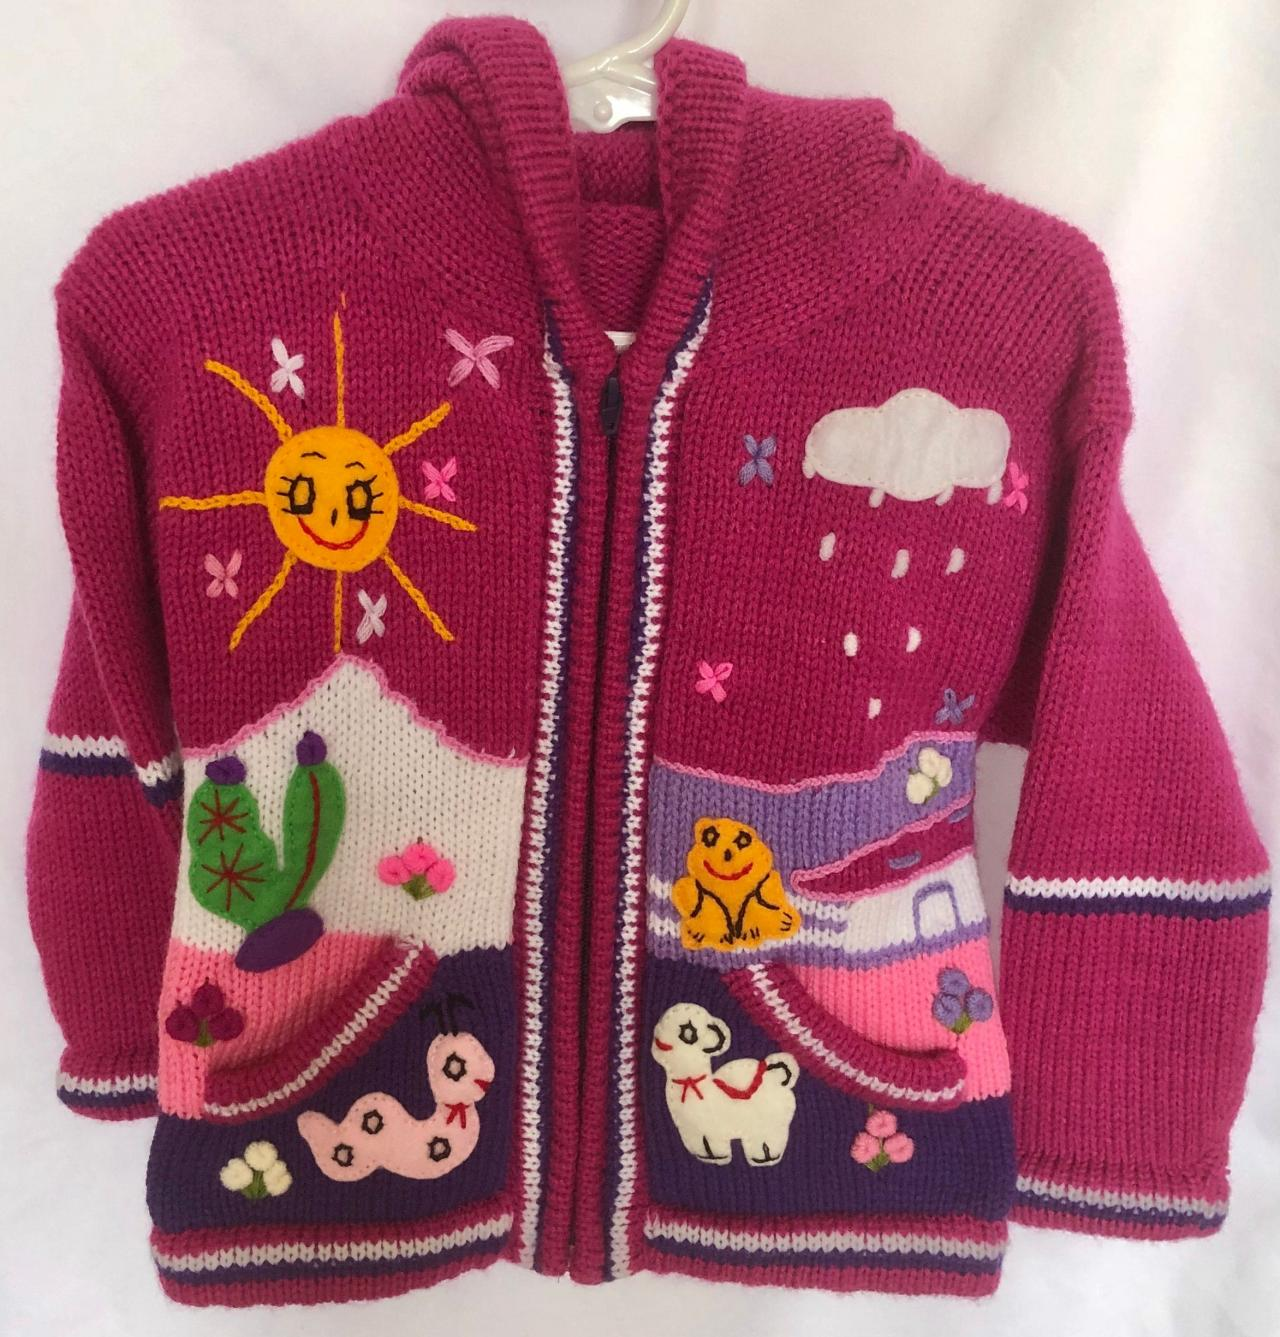 Size 4 Magenta Jacket, Hooded Jacket, Winter Jacket, Knitwear Jacket, Children Jacket, Boys Jacket, Girls Jacket, Handwoven Jacket